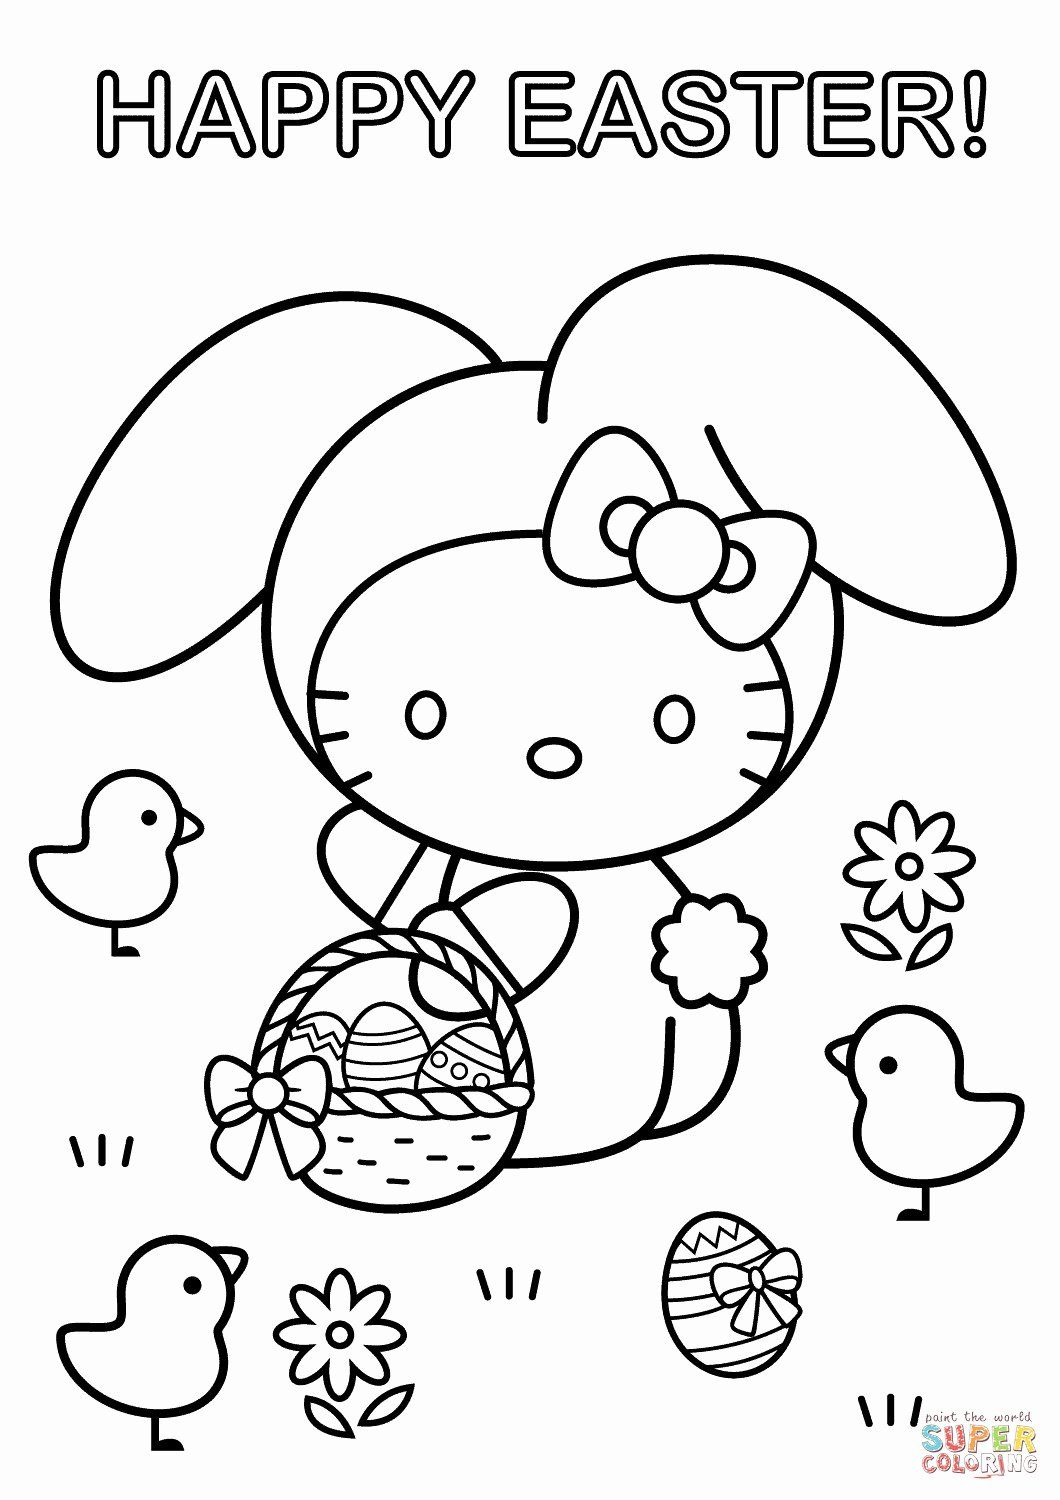 Printable Easter Coloring Page Di